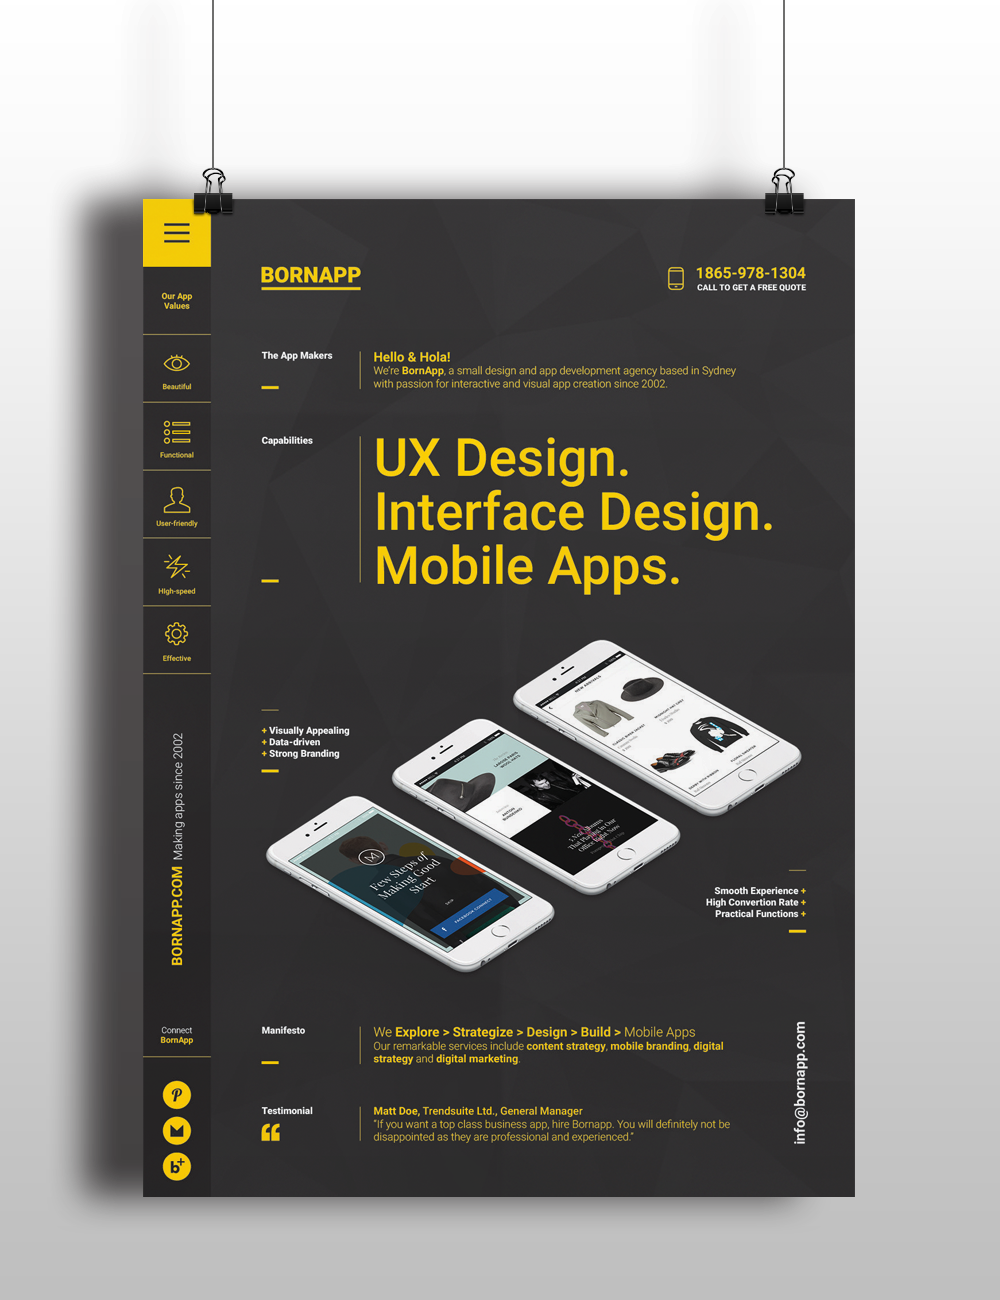 Poster design app - A Set Of 4 Mobile Application Flyer Poster Templates Created For App Studios Or Agencies To Promote Their App Design And Development Services